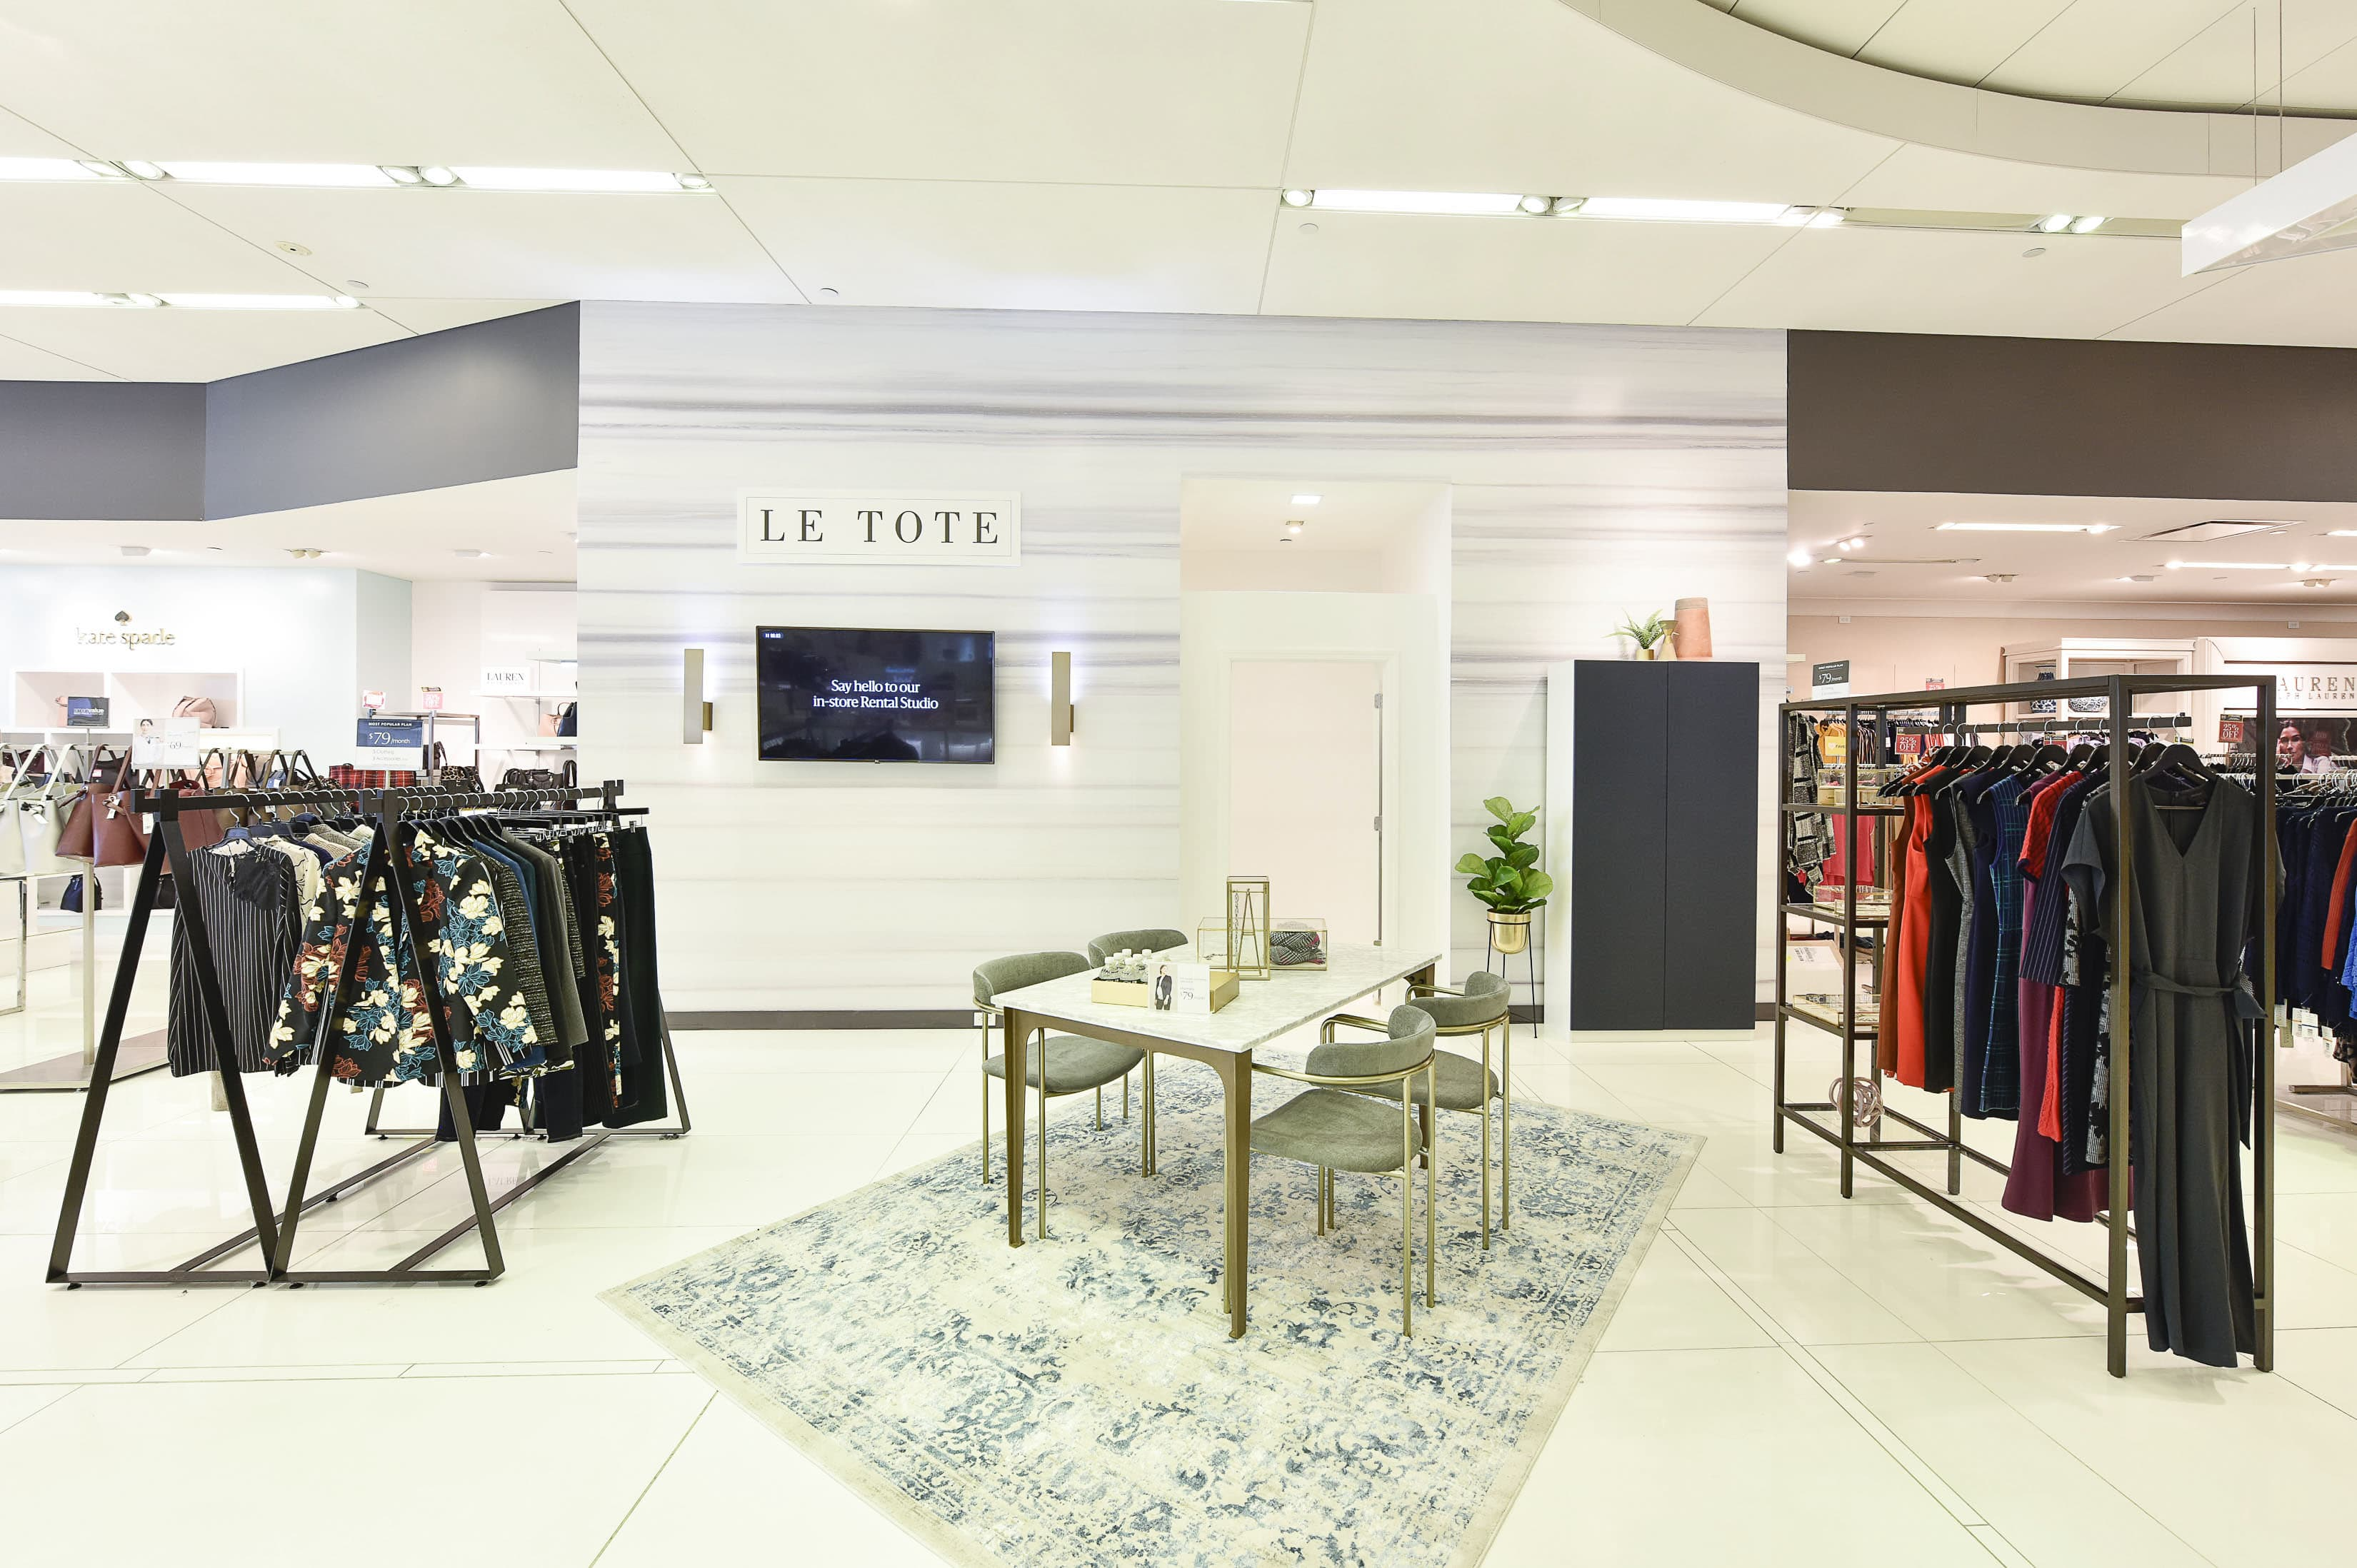 Lord & Taylor is plotting its comeback under new owner Le Tote, starting with a SoHo pop-up shop